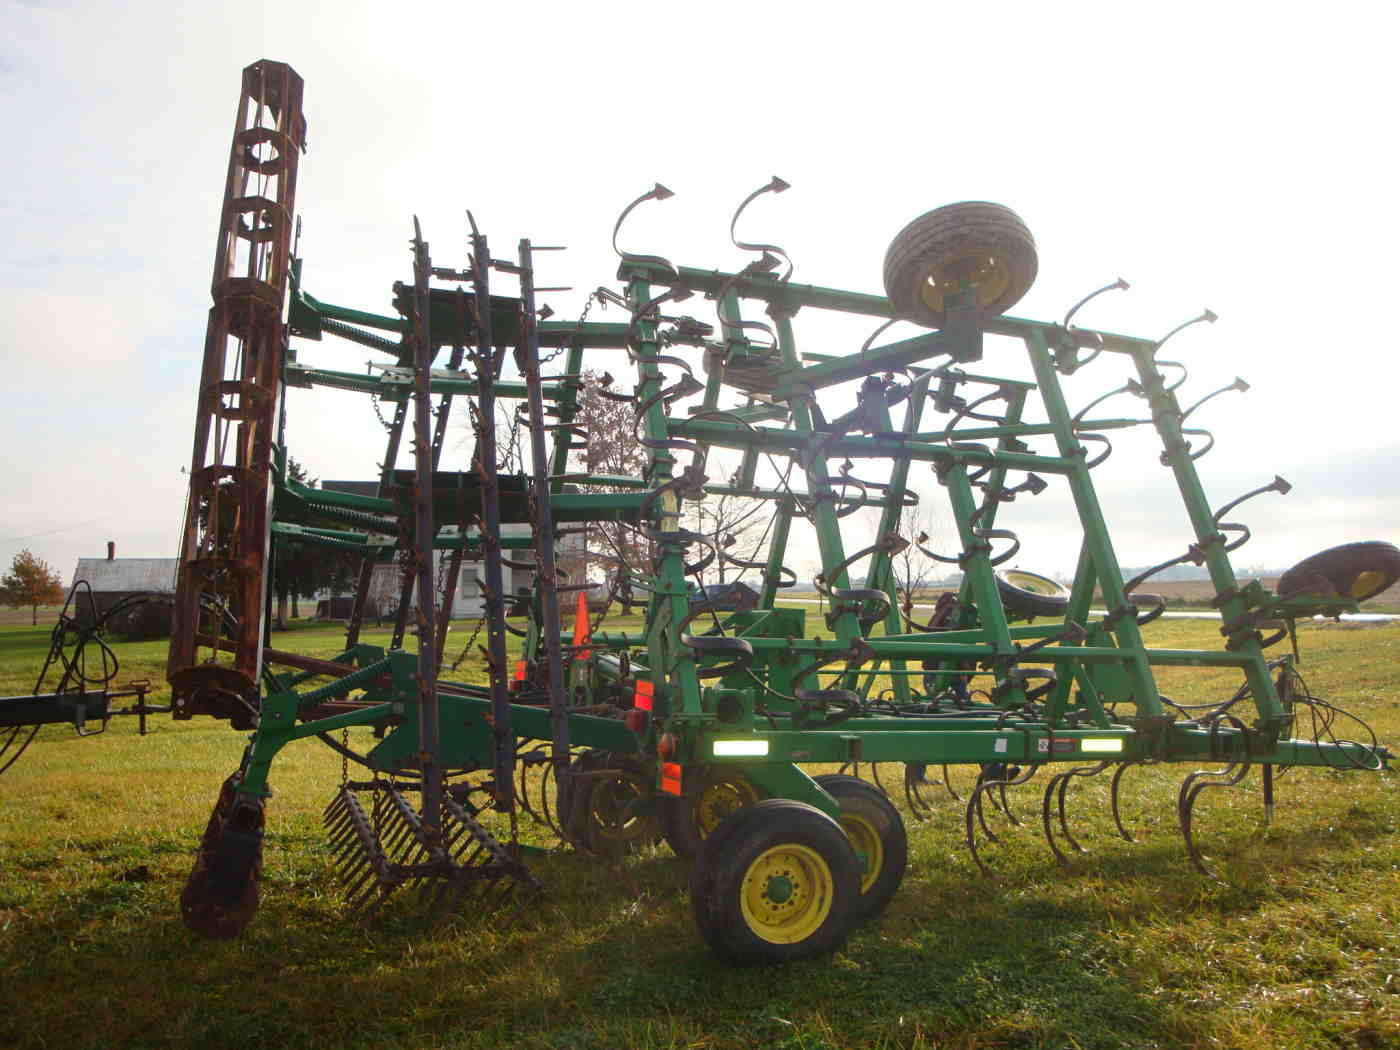 Rolling Basket Harrow : Ft john deere field cultivator w harrow rolling